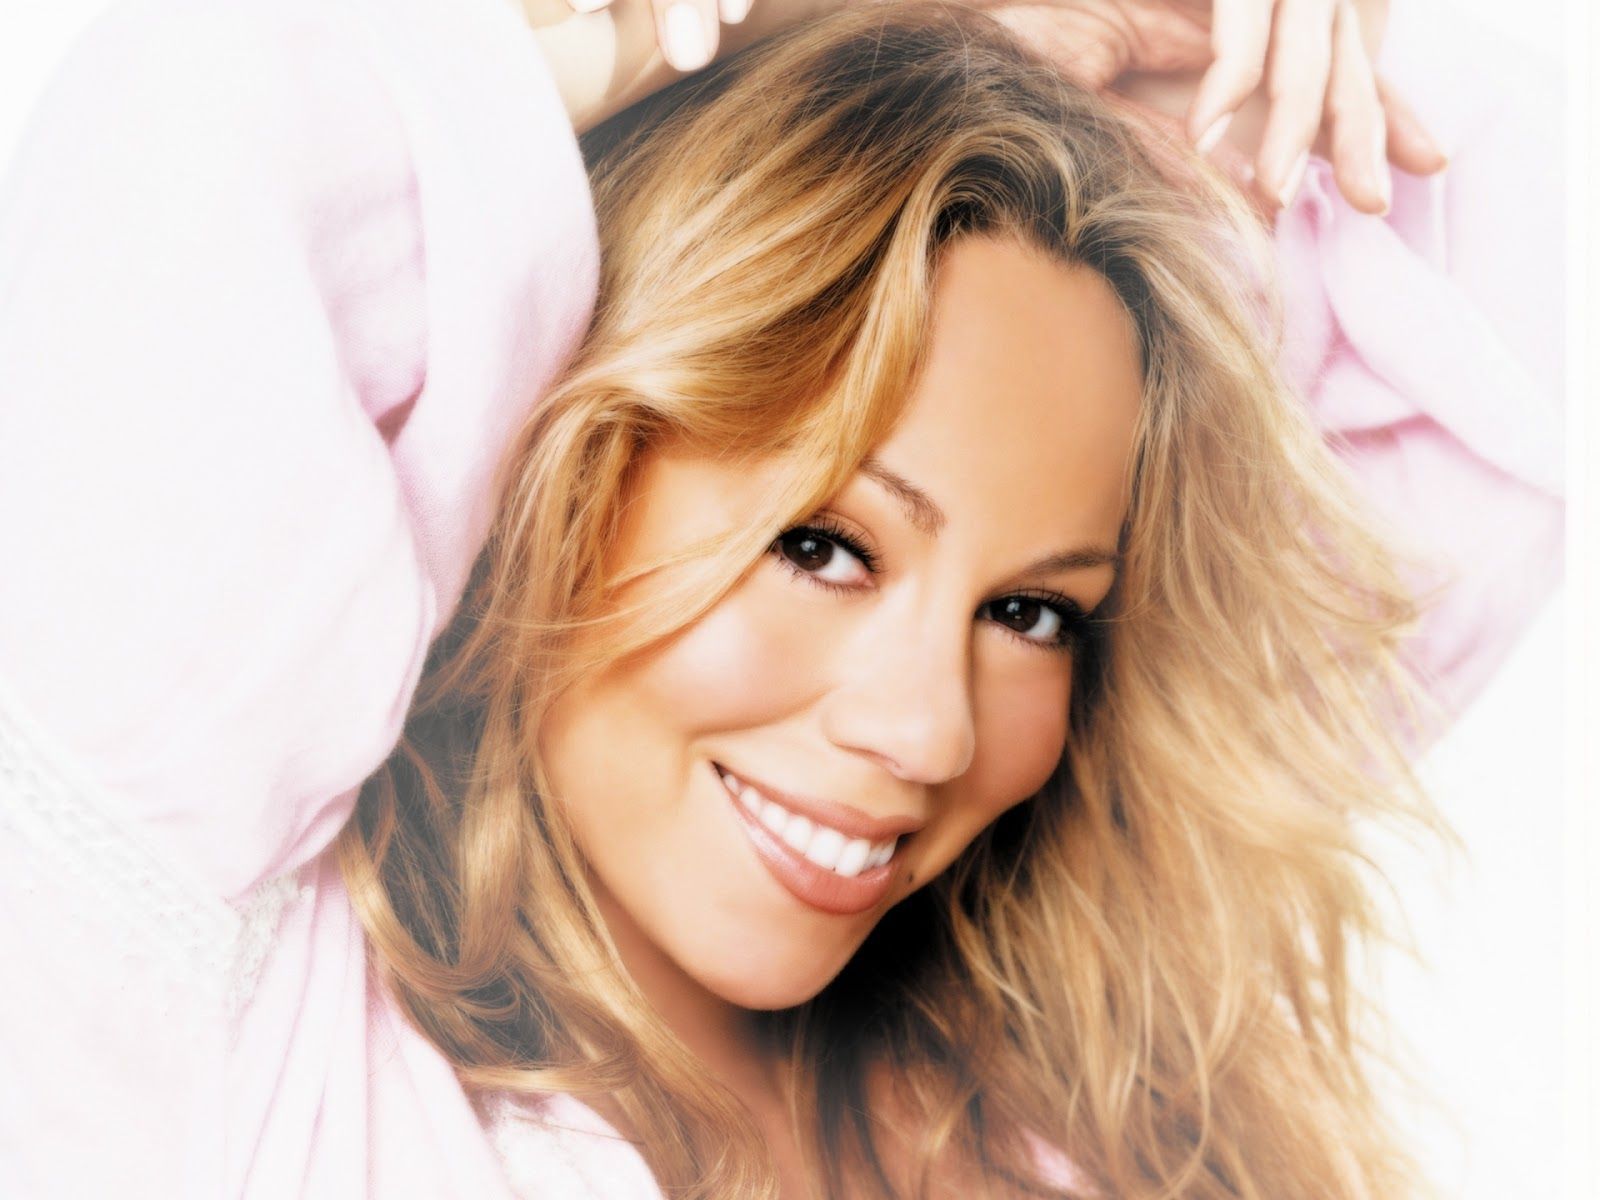 Actresses Hd Wallpapers Mariah Carey Hd Wallpapers Mariah Carey Long Hair Styles Mariah